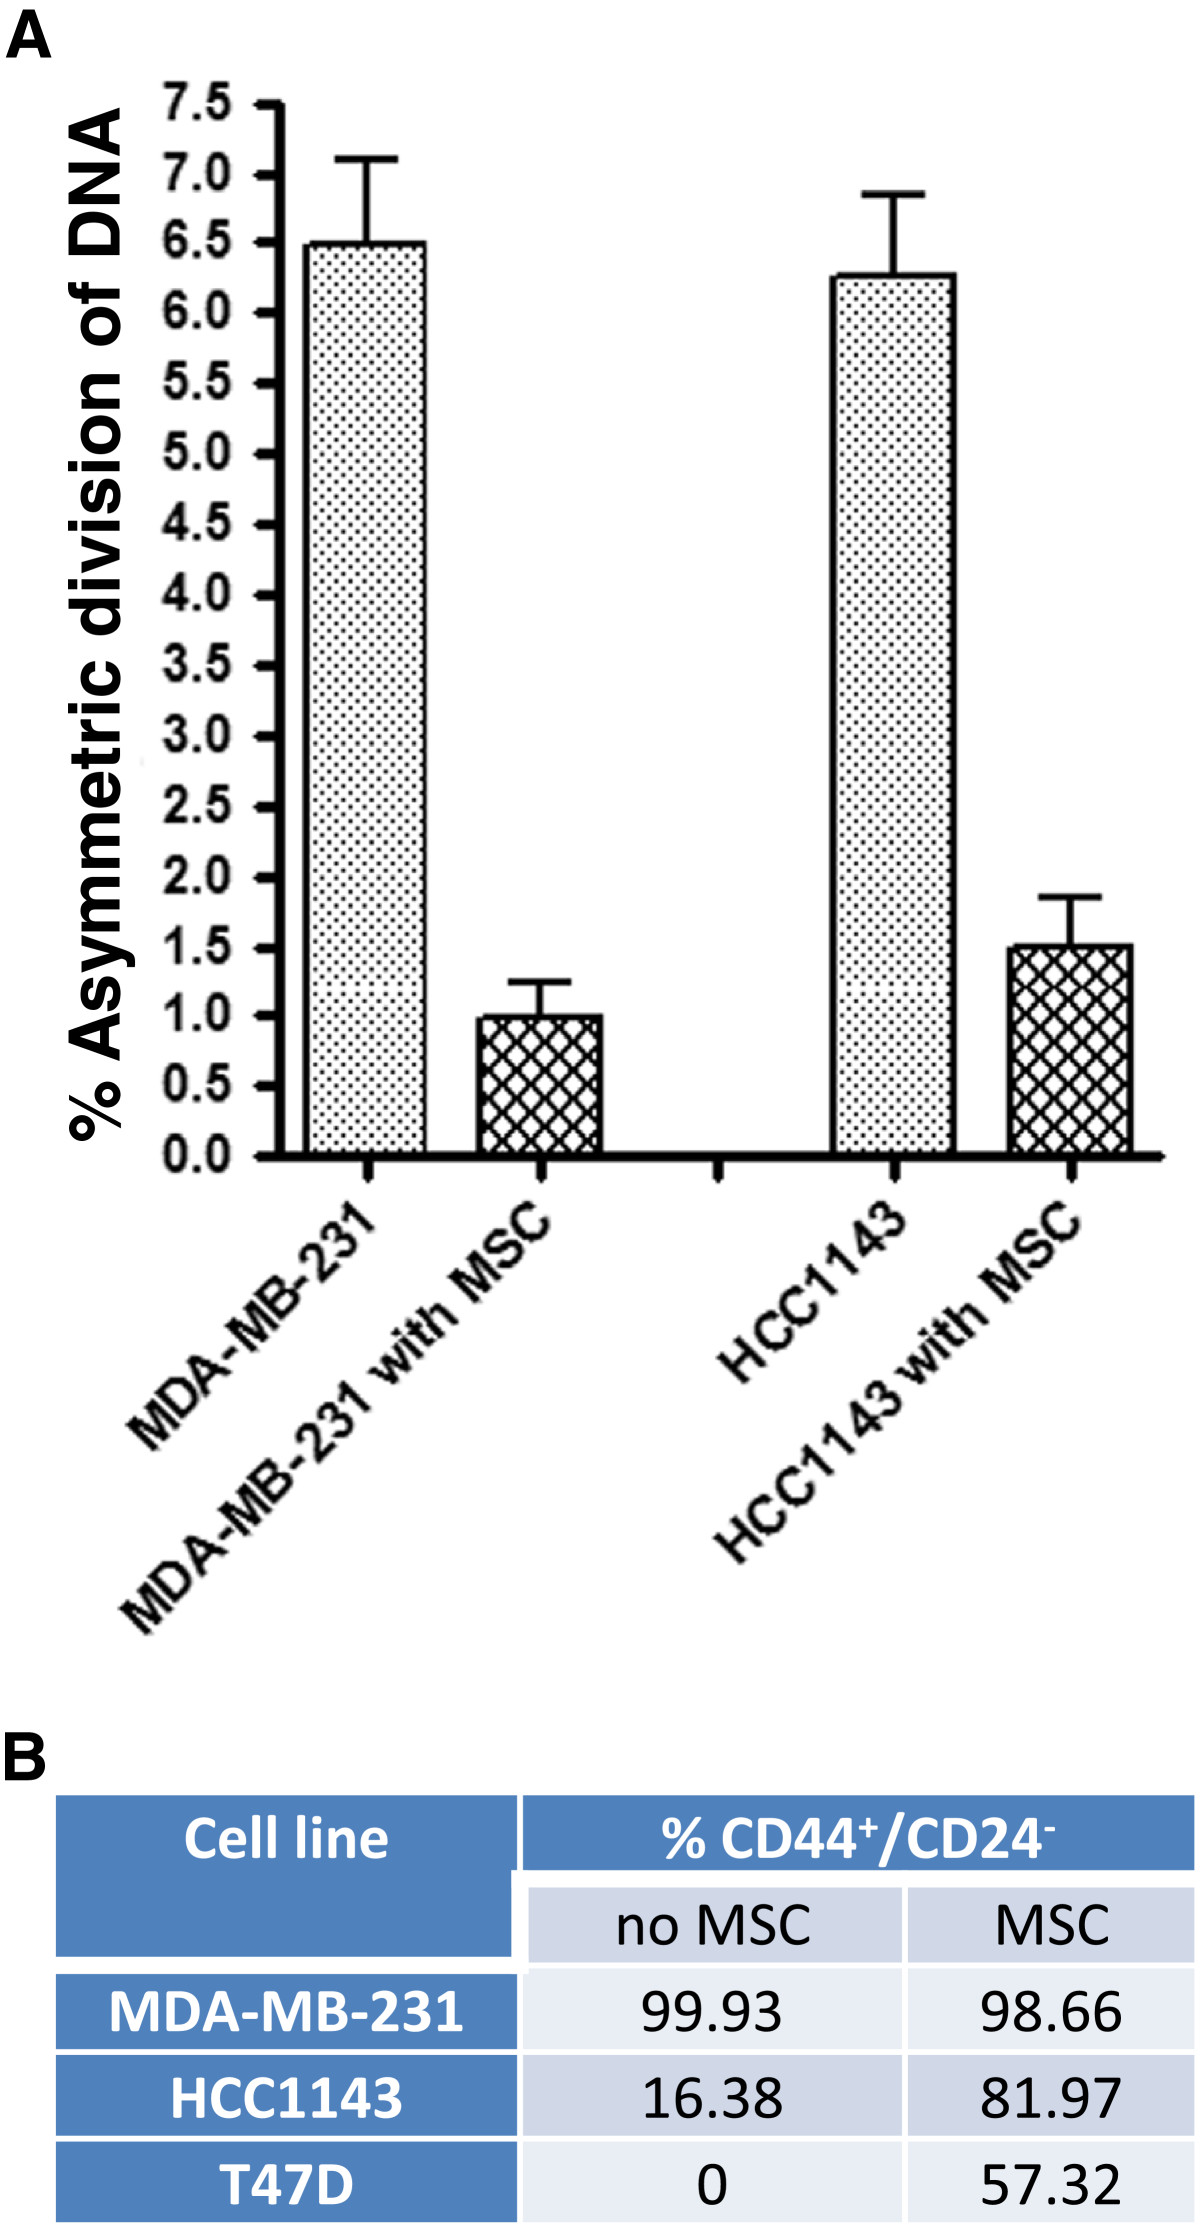 http://static-content.springer.com/image/art%3A10.1186%2F1476-4598-12-139/MediaObjects/12943_2013_Article_1220_Fig5_HTML.jpg